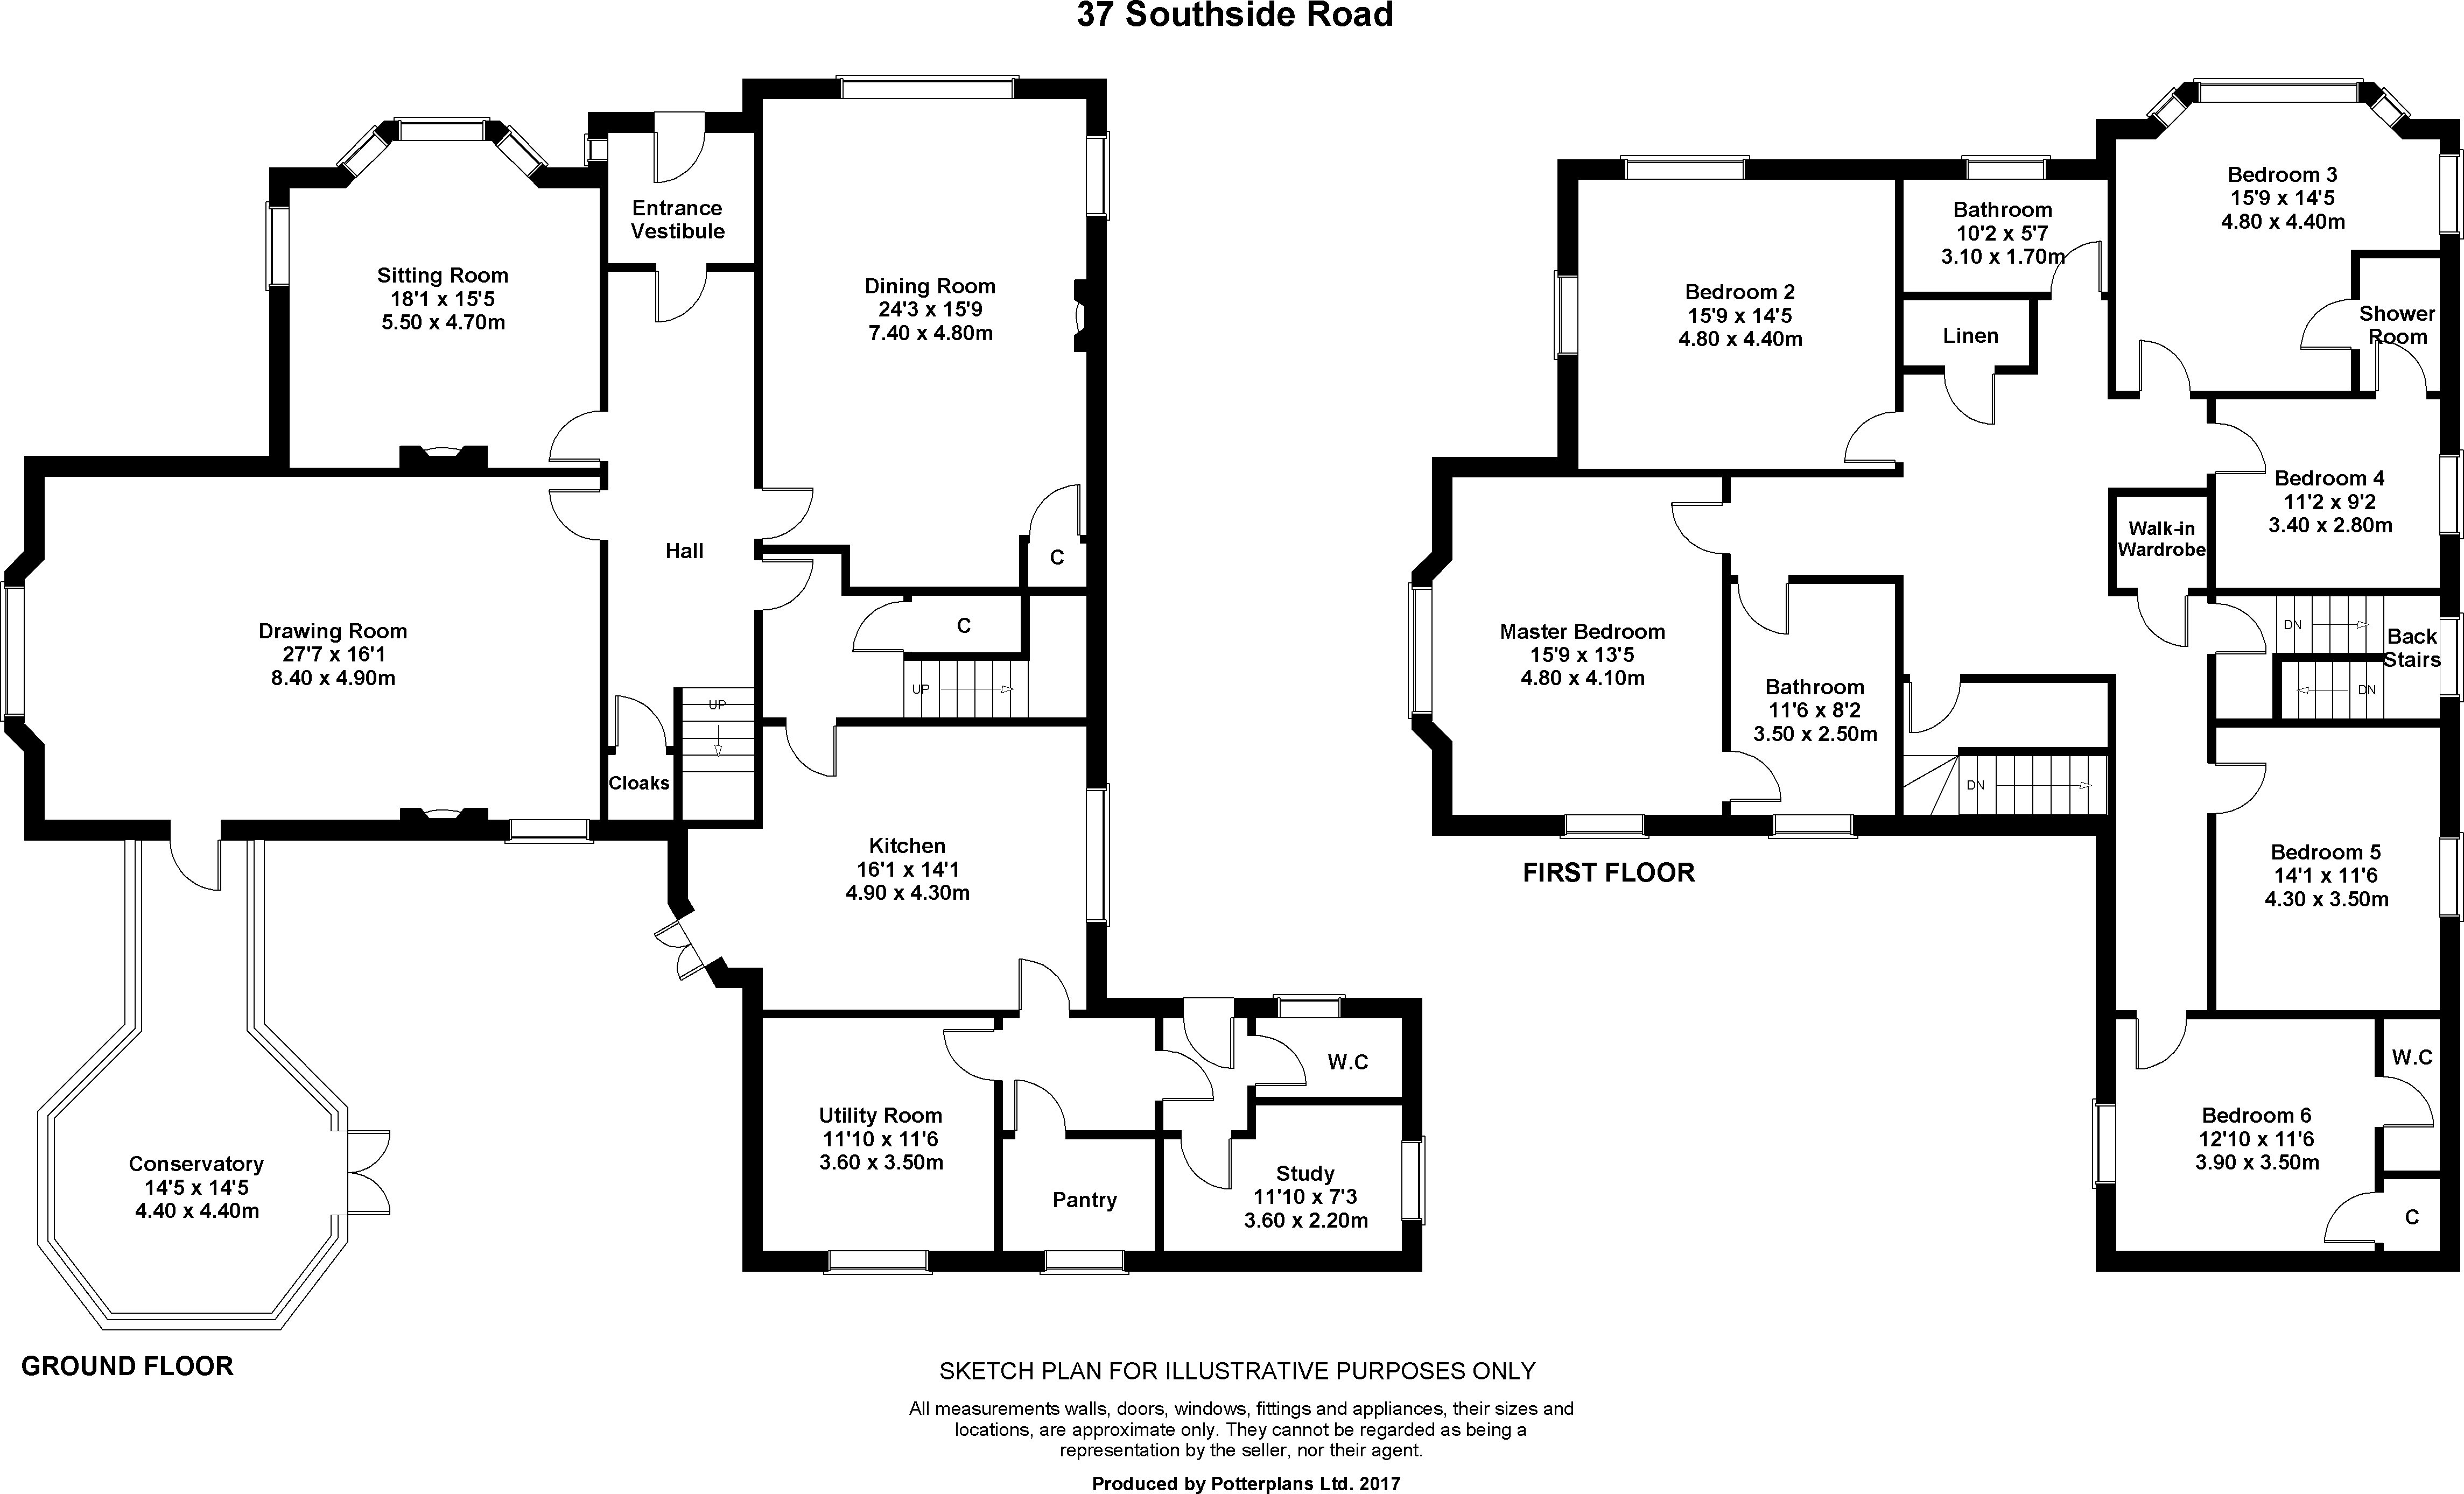 Floorplans for Southside Road, Inverness, Inverness-shire, IV2